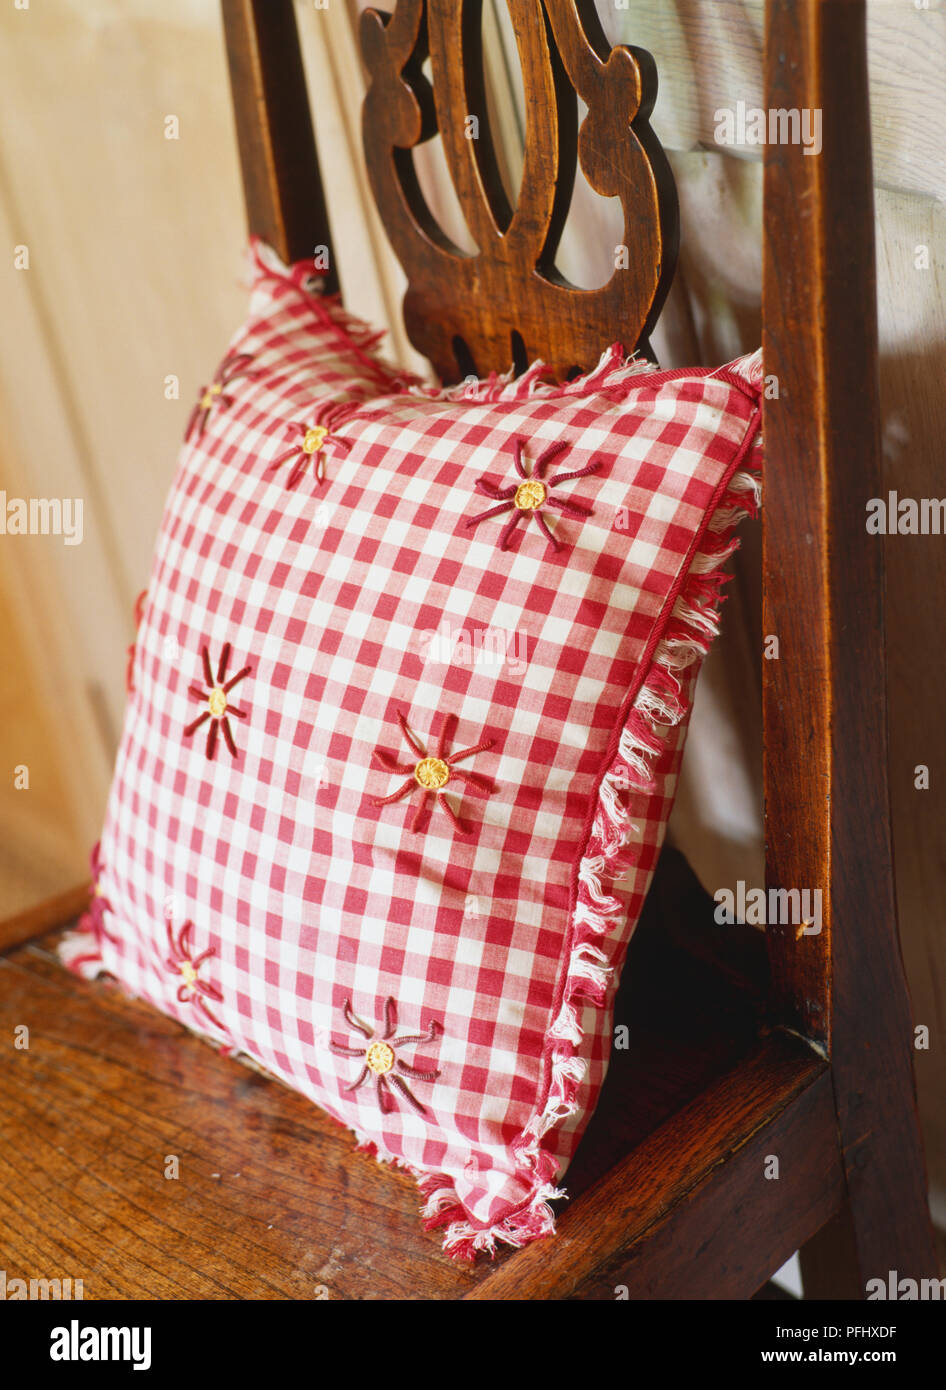 Red And White Checkered Cushion On A Wooden Chair Close Up Stock